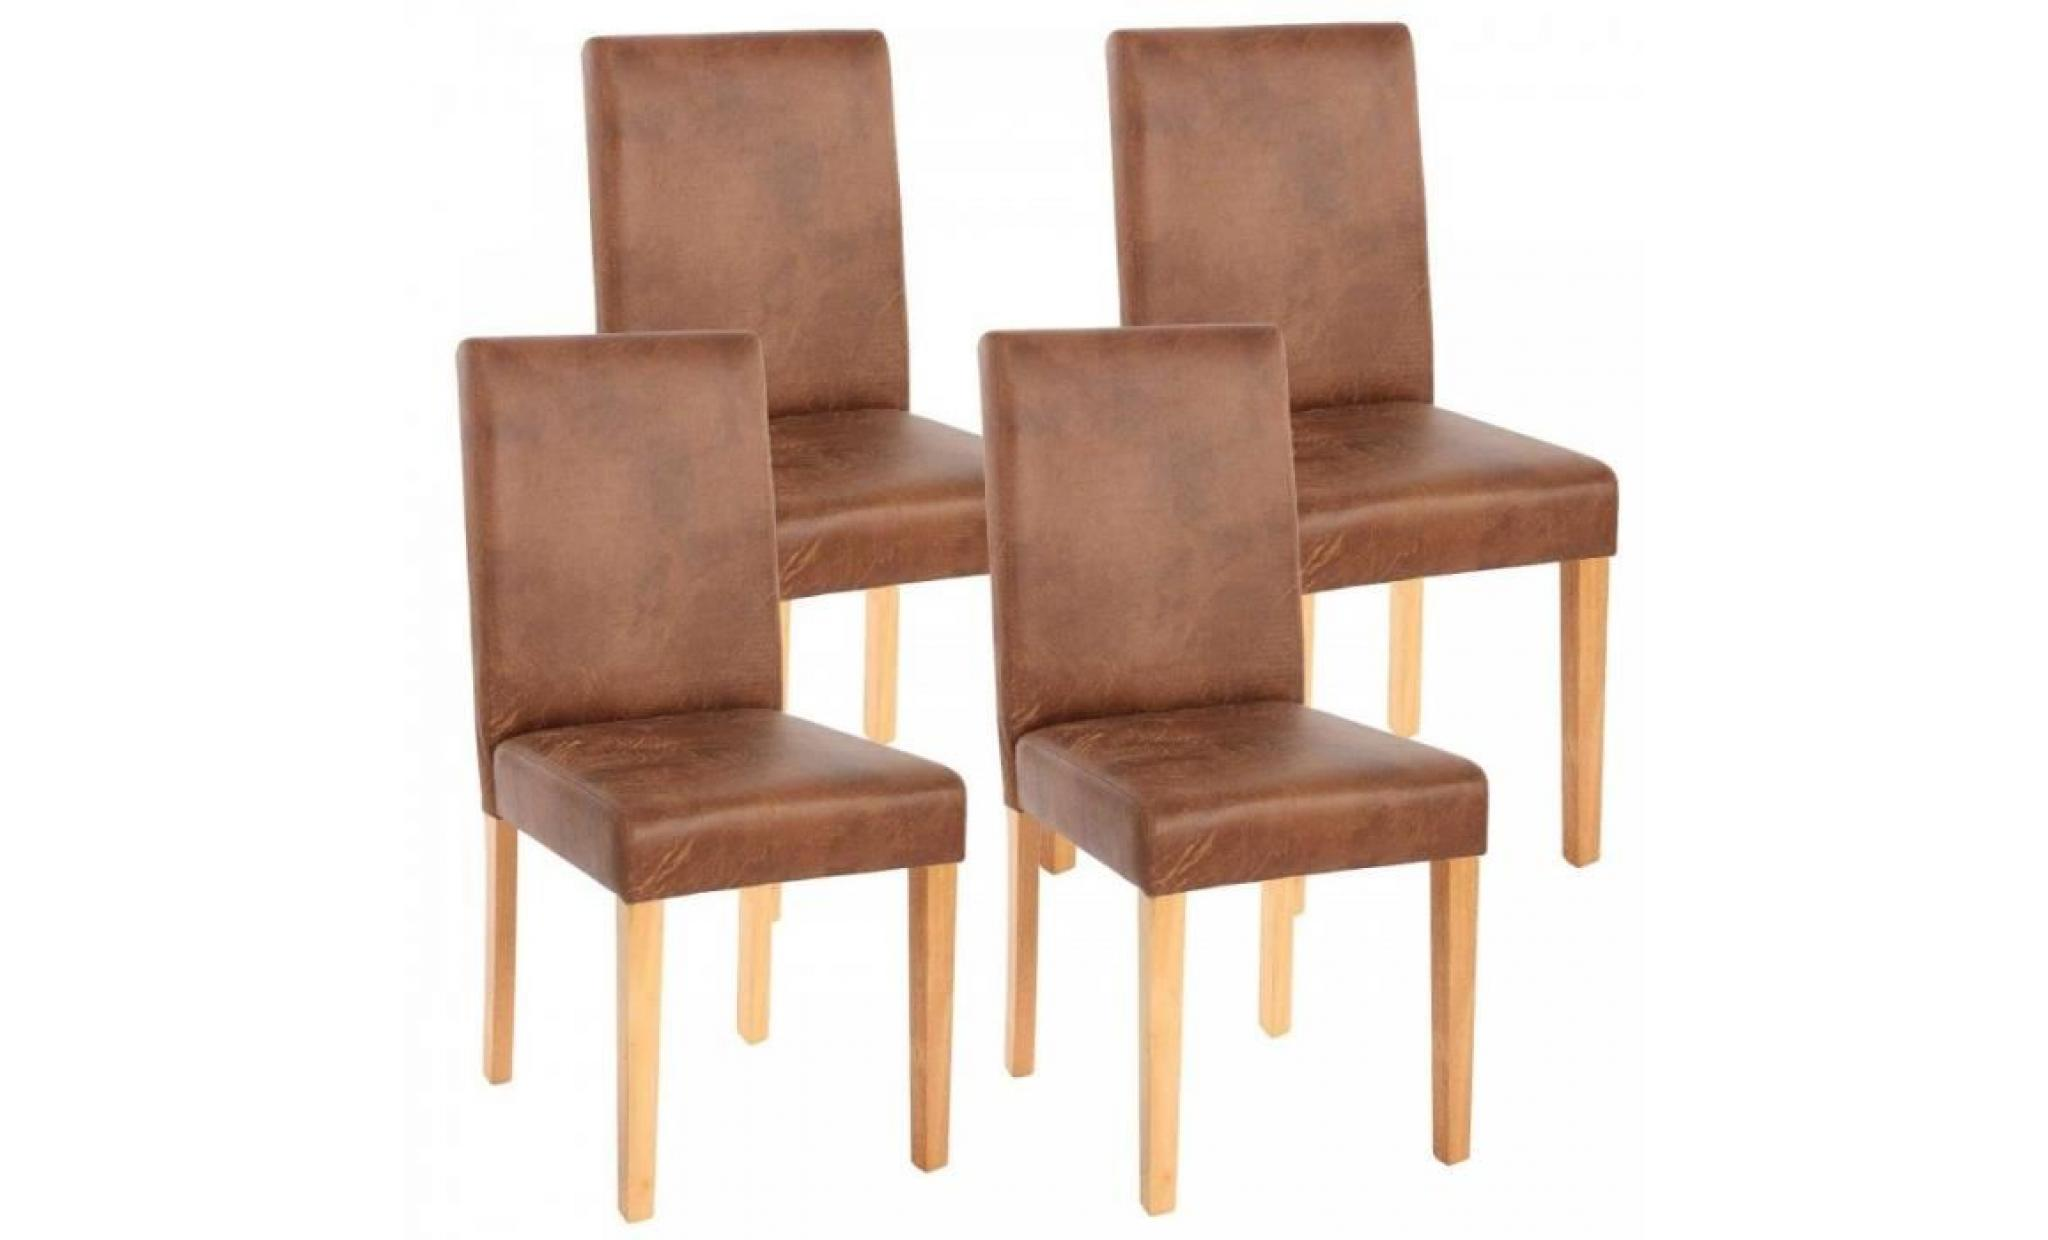 Lot de 4 chaises de salle manger simili cuir marron for Chaises simili cuir marron